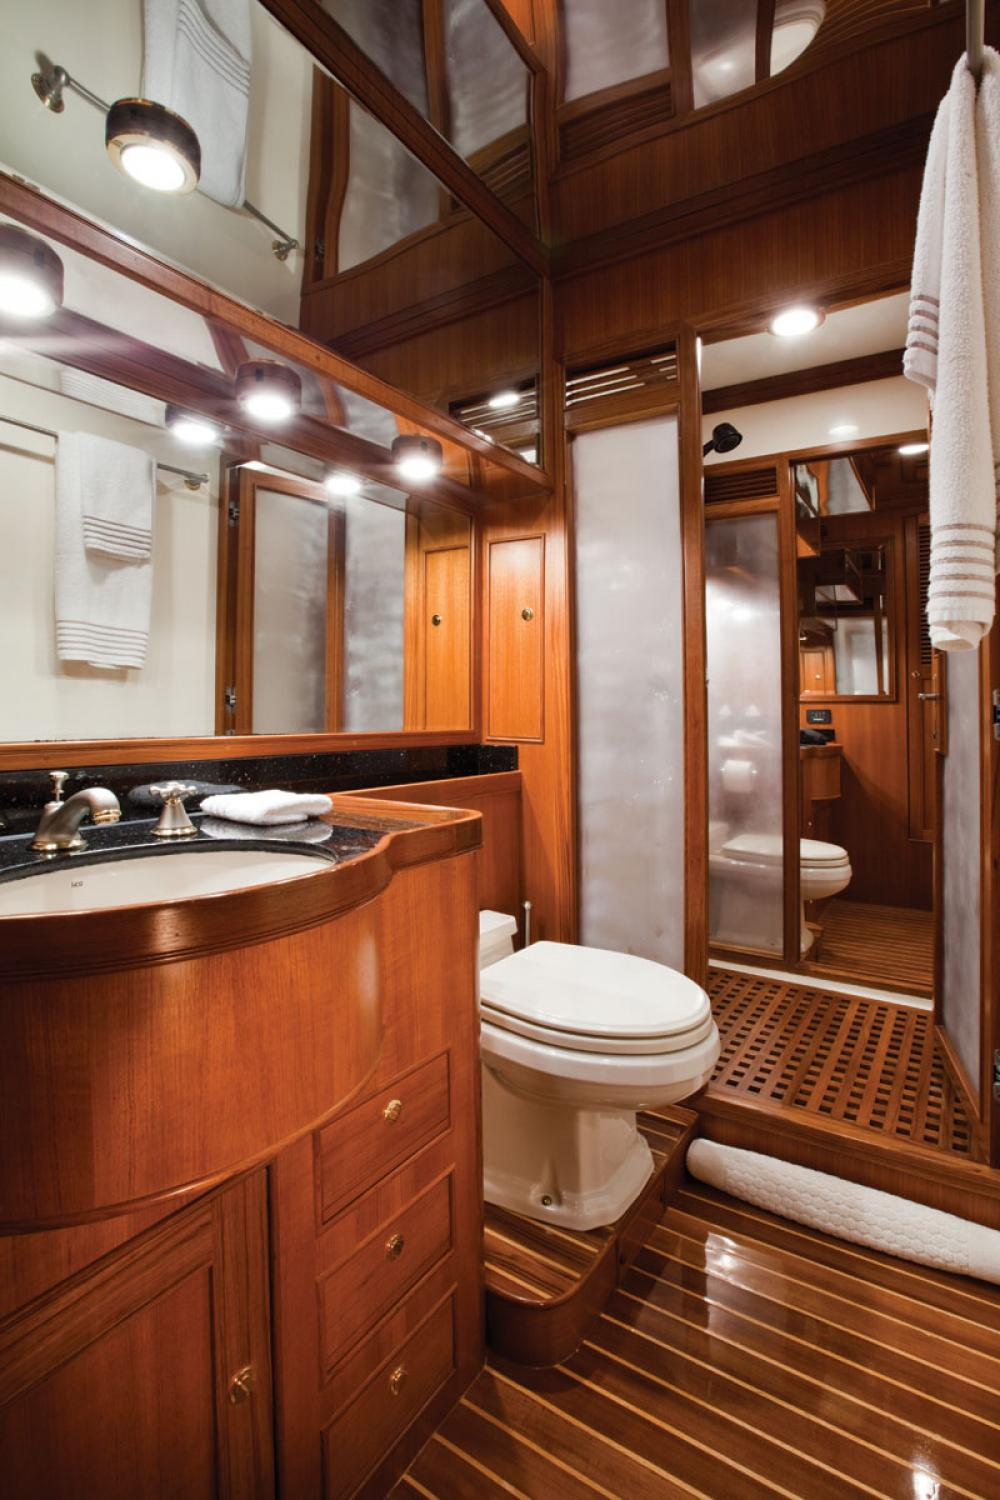 PATAGON - Luxury Motor Yacht For Sale - 1 MASTER CABIN - Img 2 | C&N